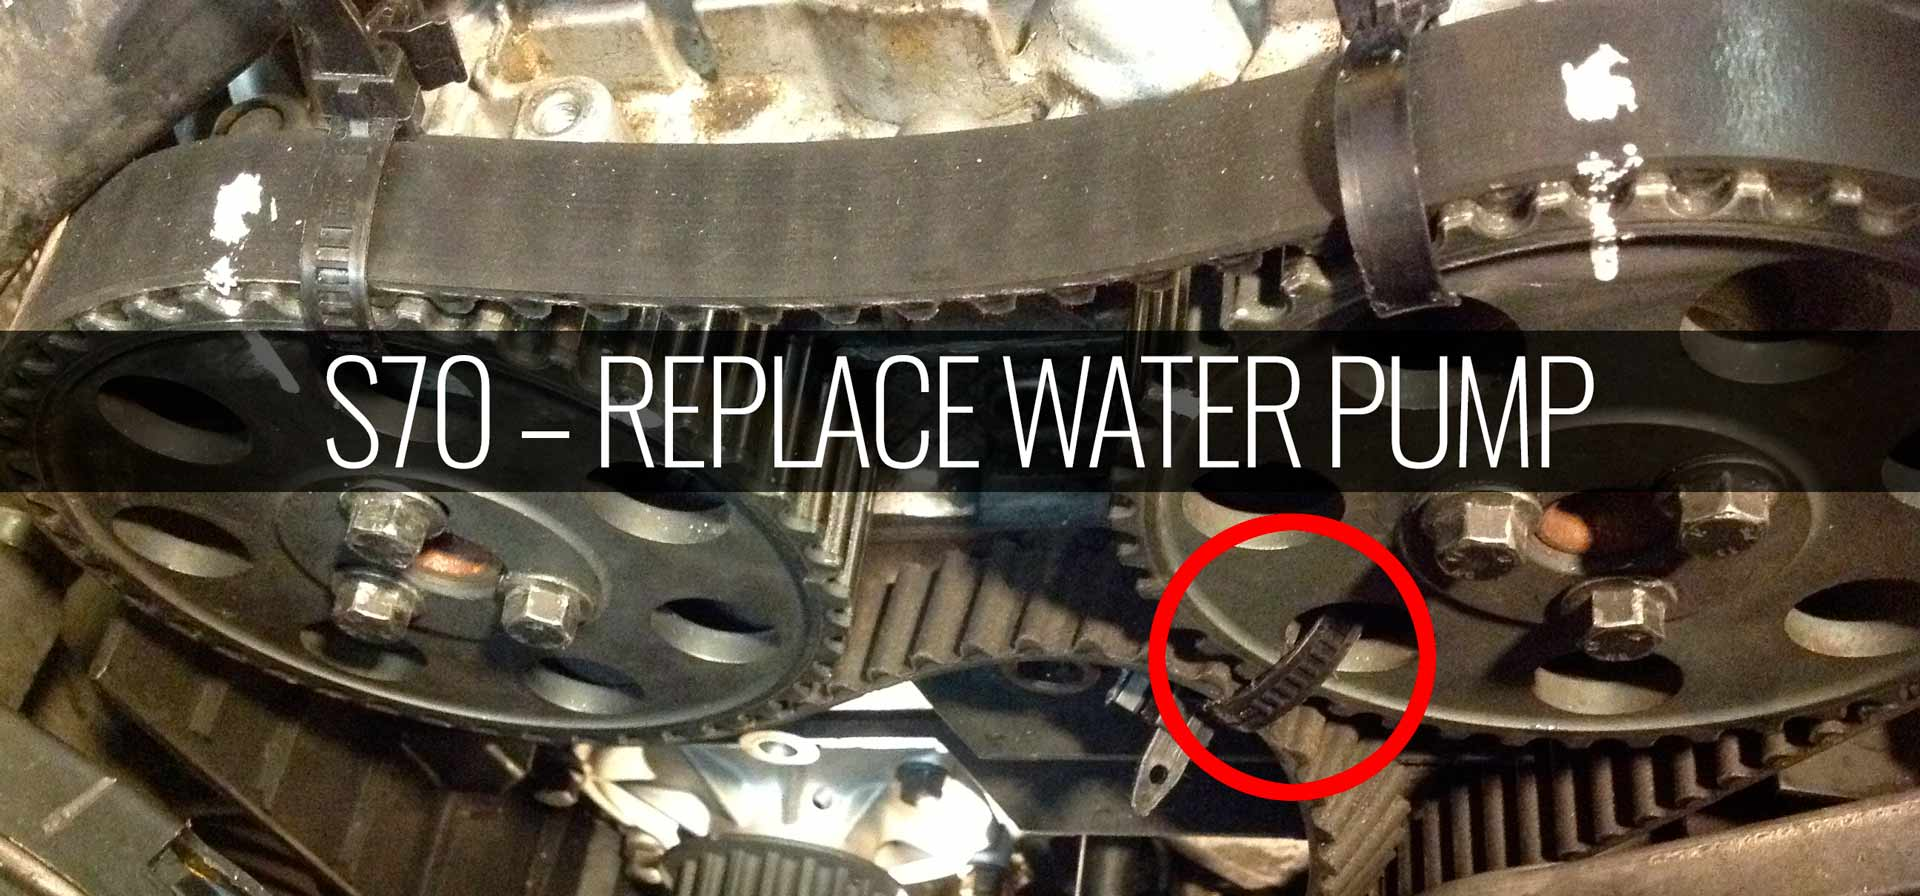 S70 Replace Water Pump -